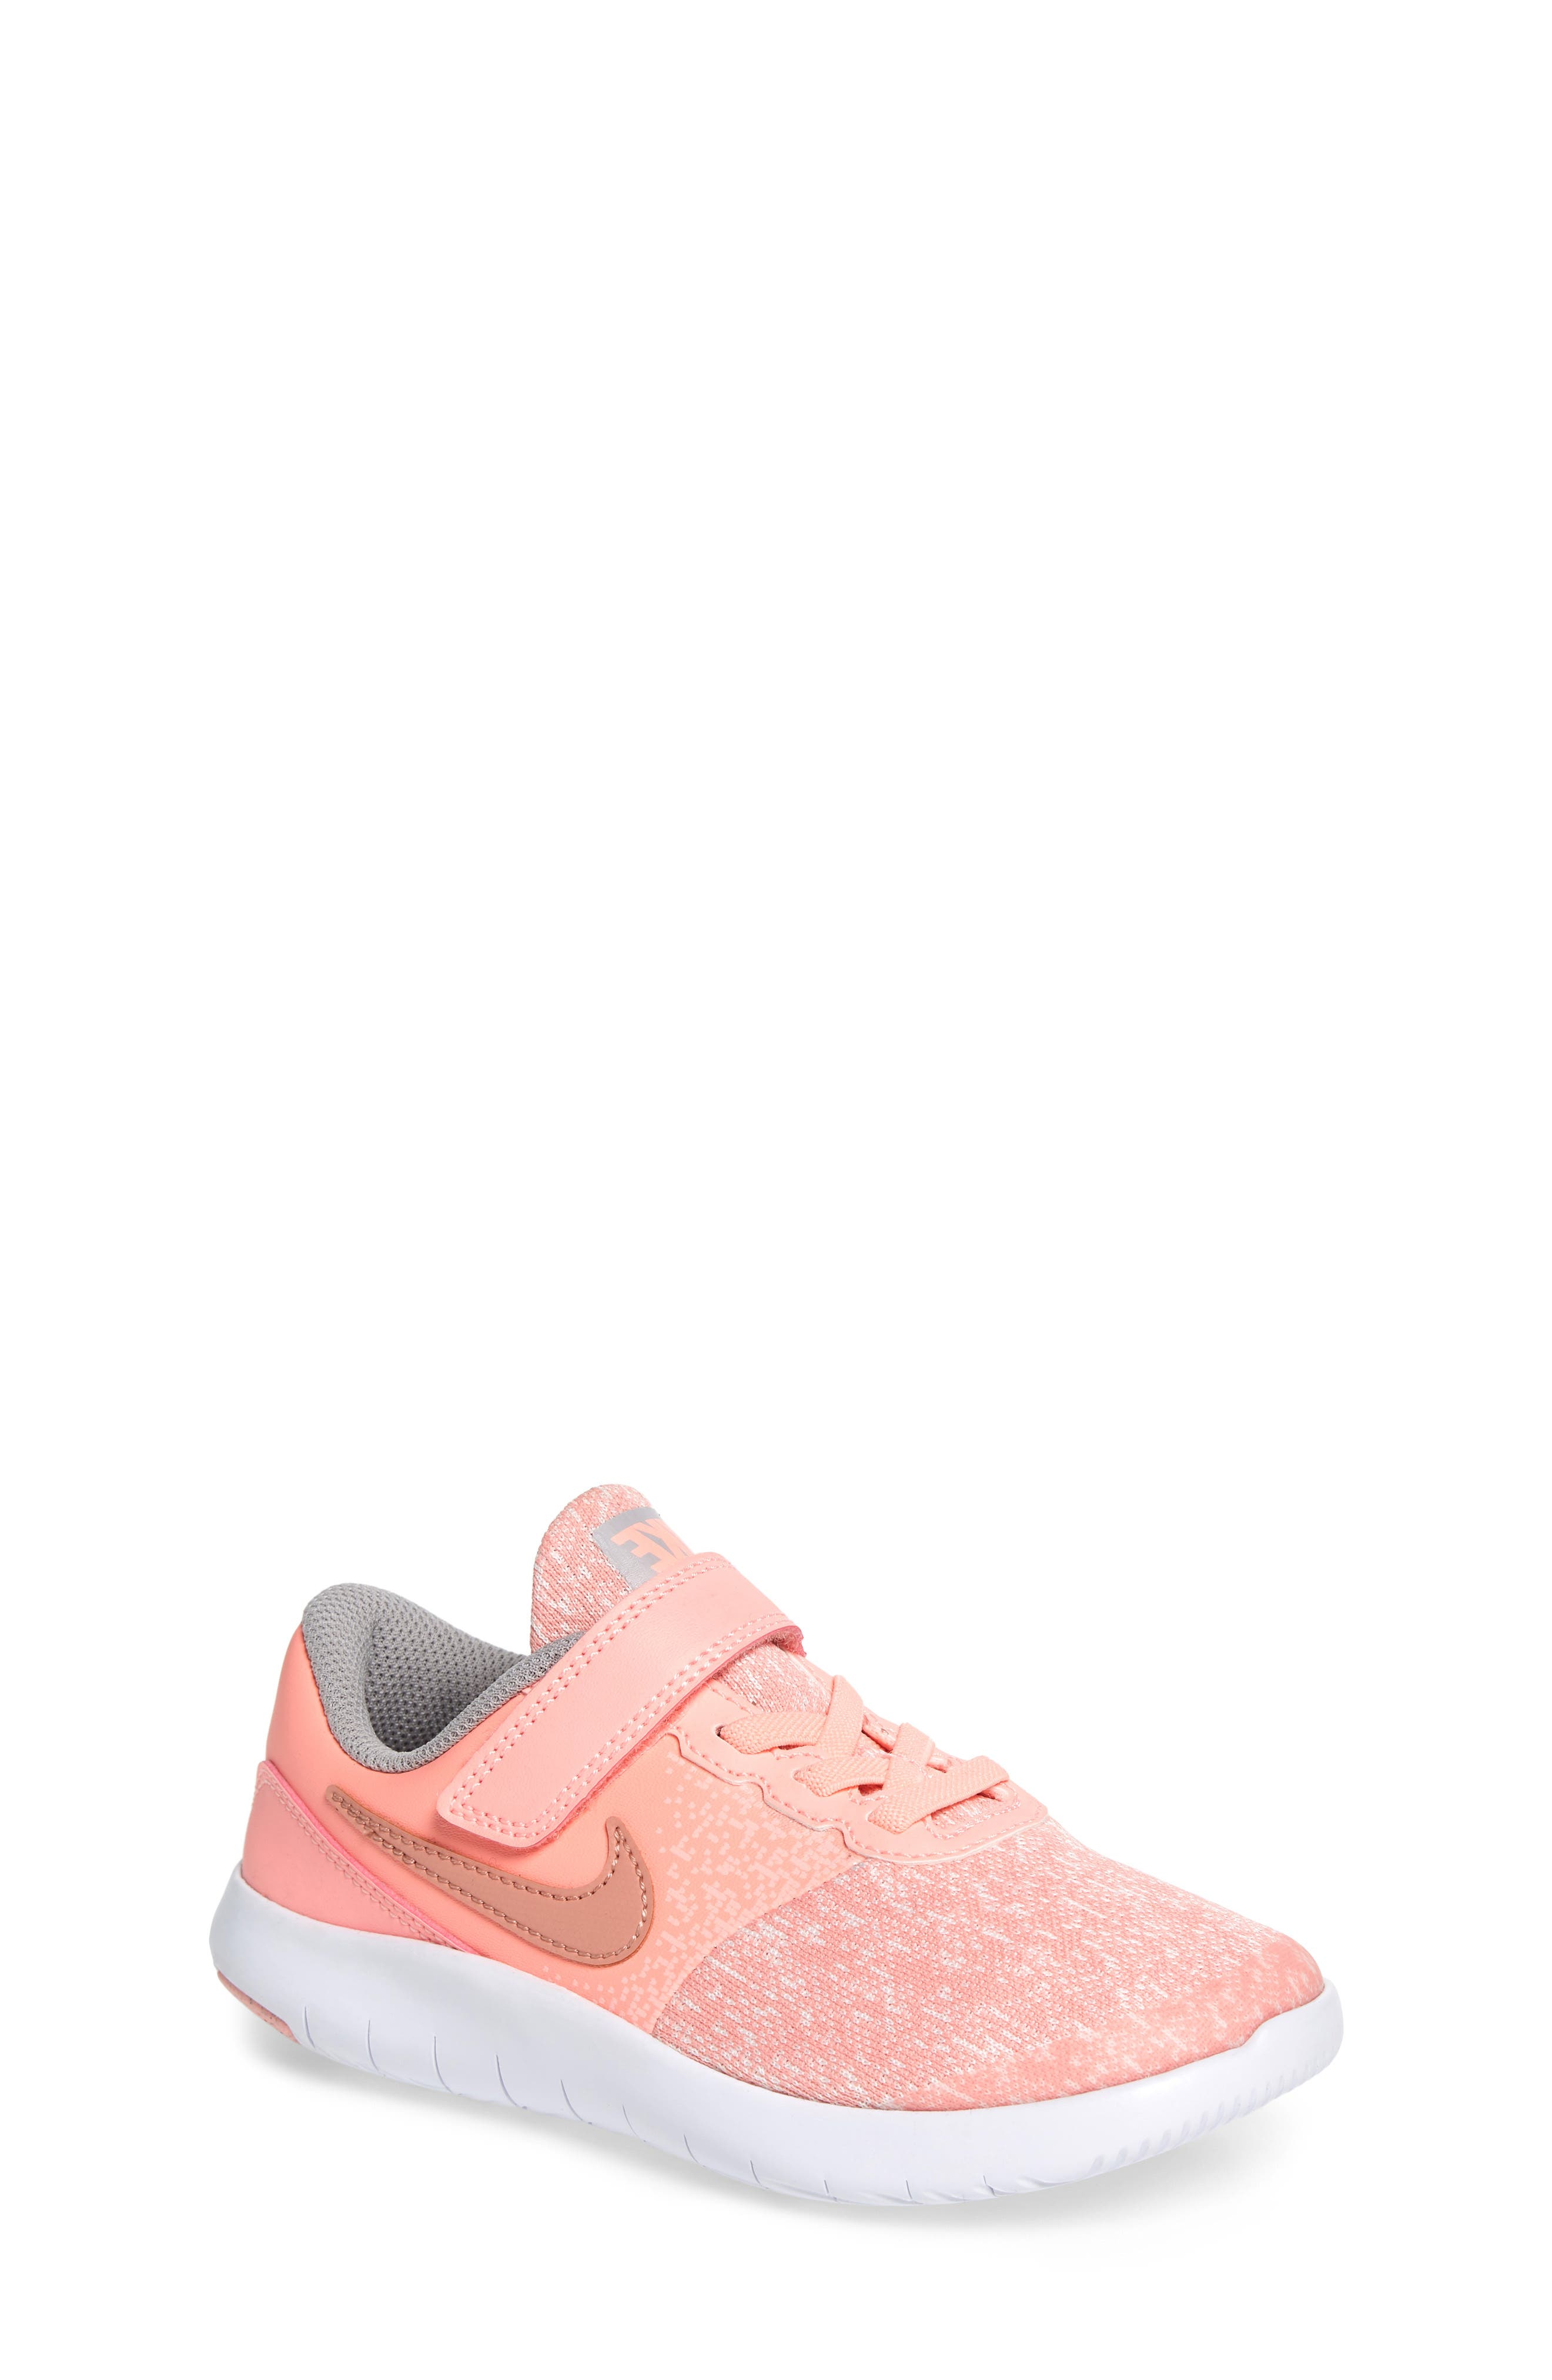 Flex Contact Running Shoe,                         Main,                         color, Rose Gold/ Storm Pink